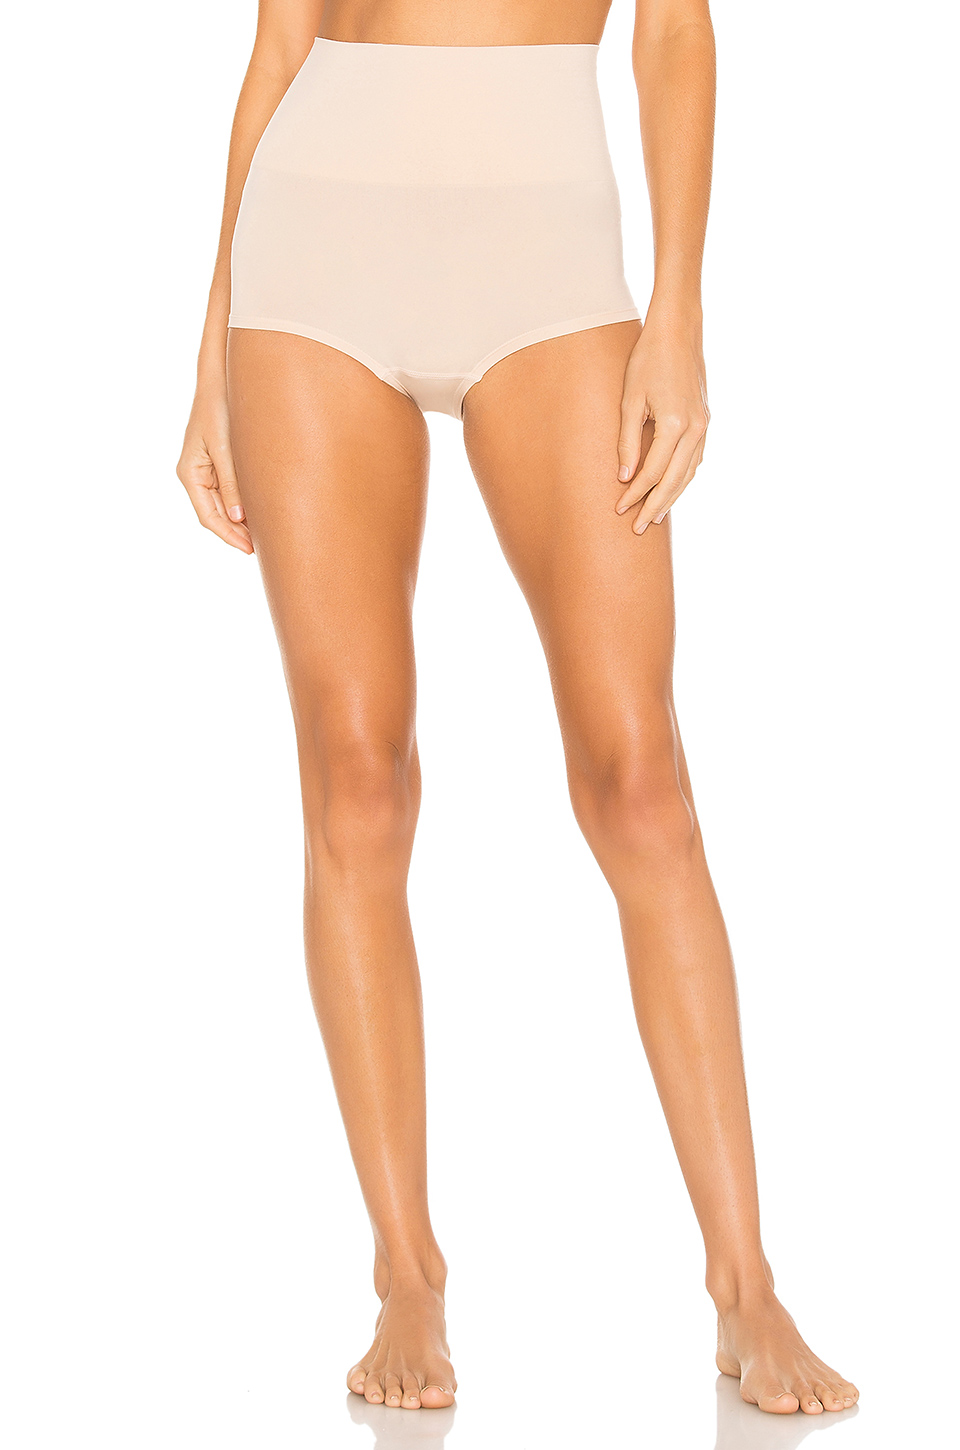 aad82e068c91c Buy Original Yummie by Heather Thomson Ultralight Girl Short at ...